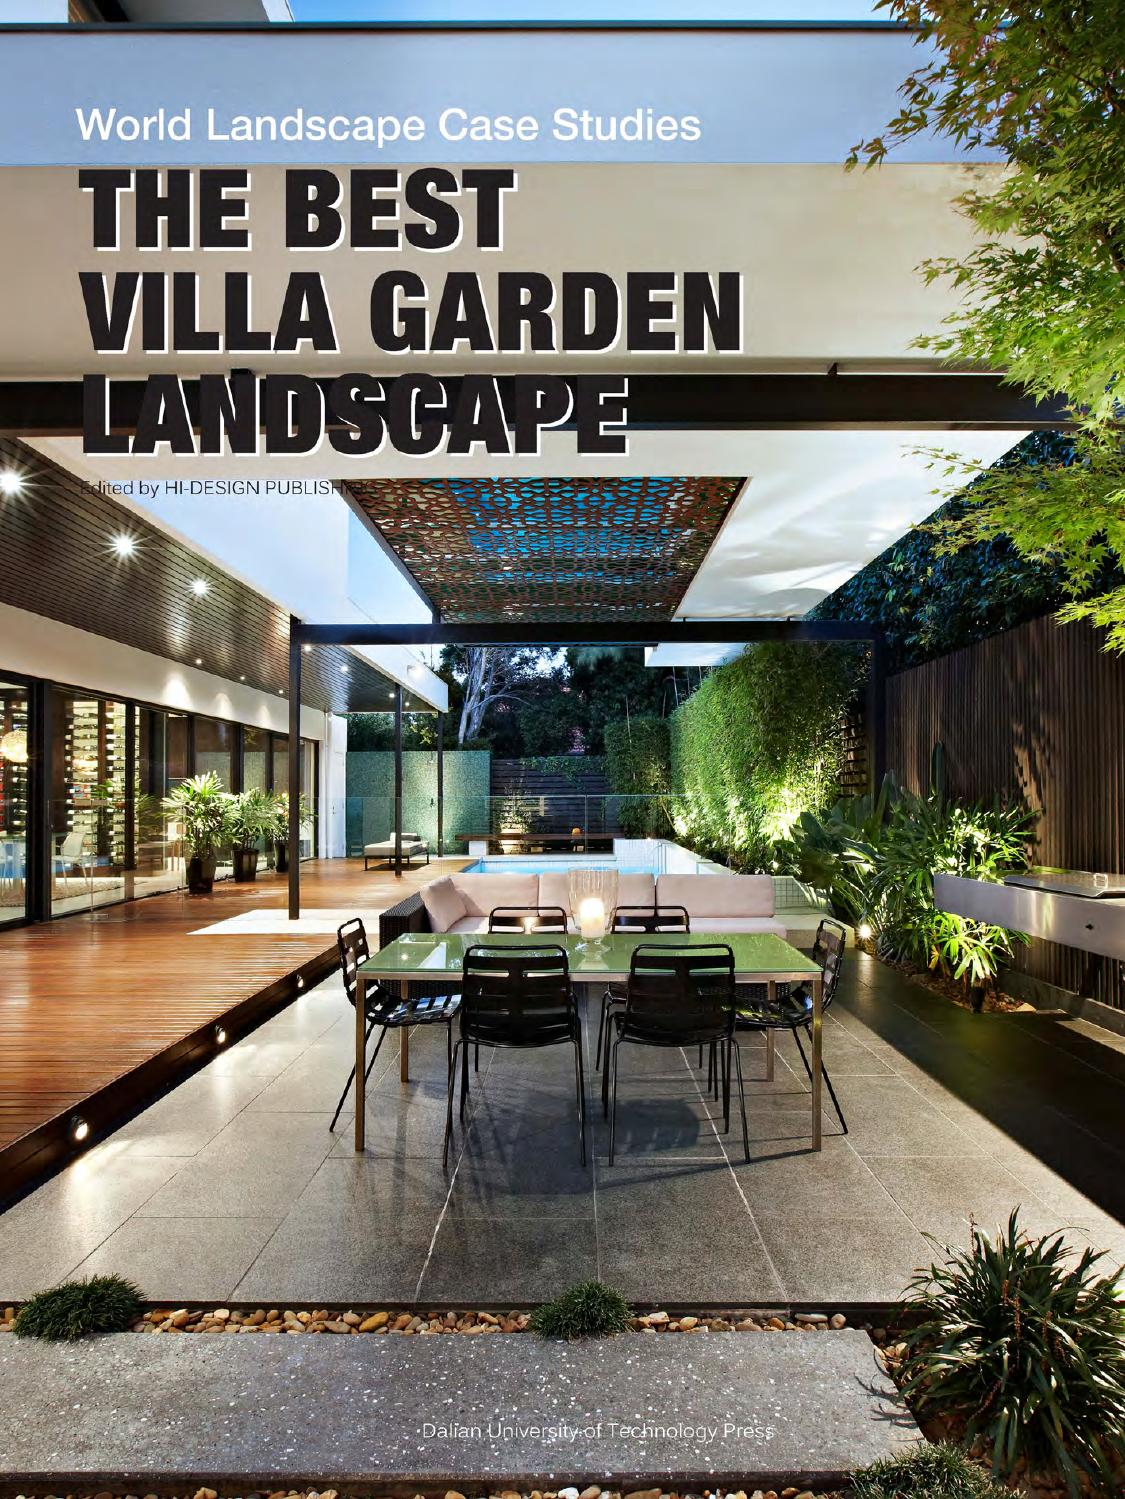 The best villa garden landscape by hi design international for Landscape villa design